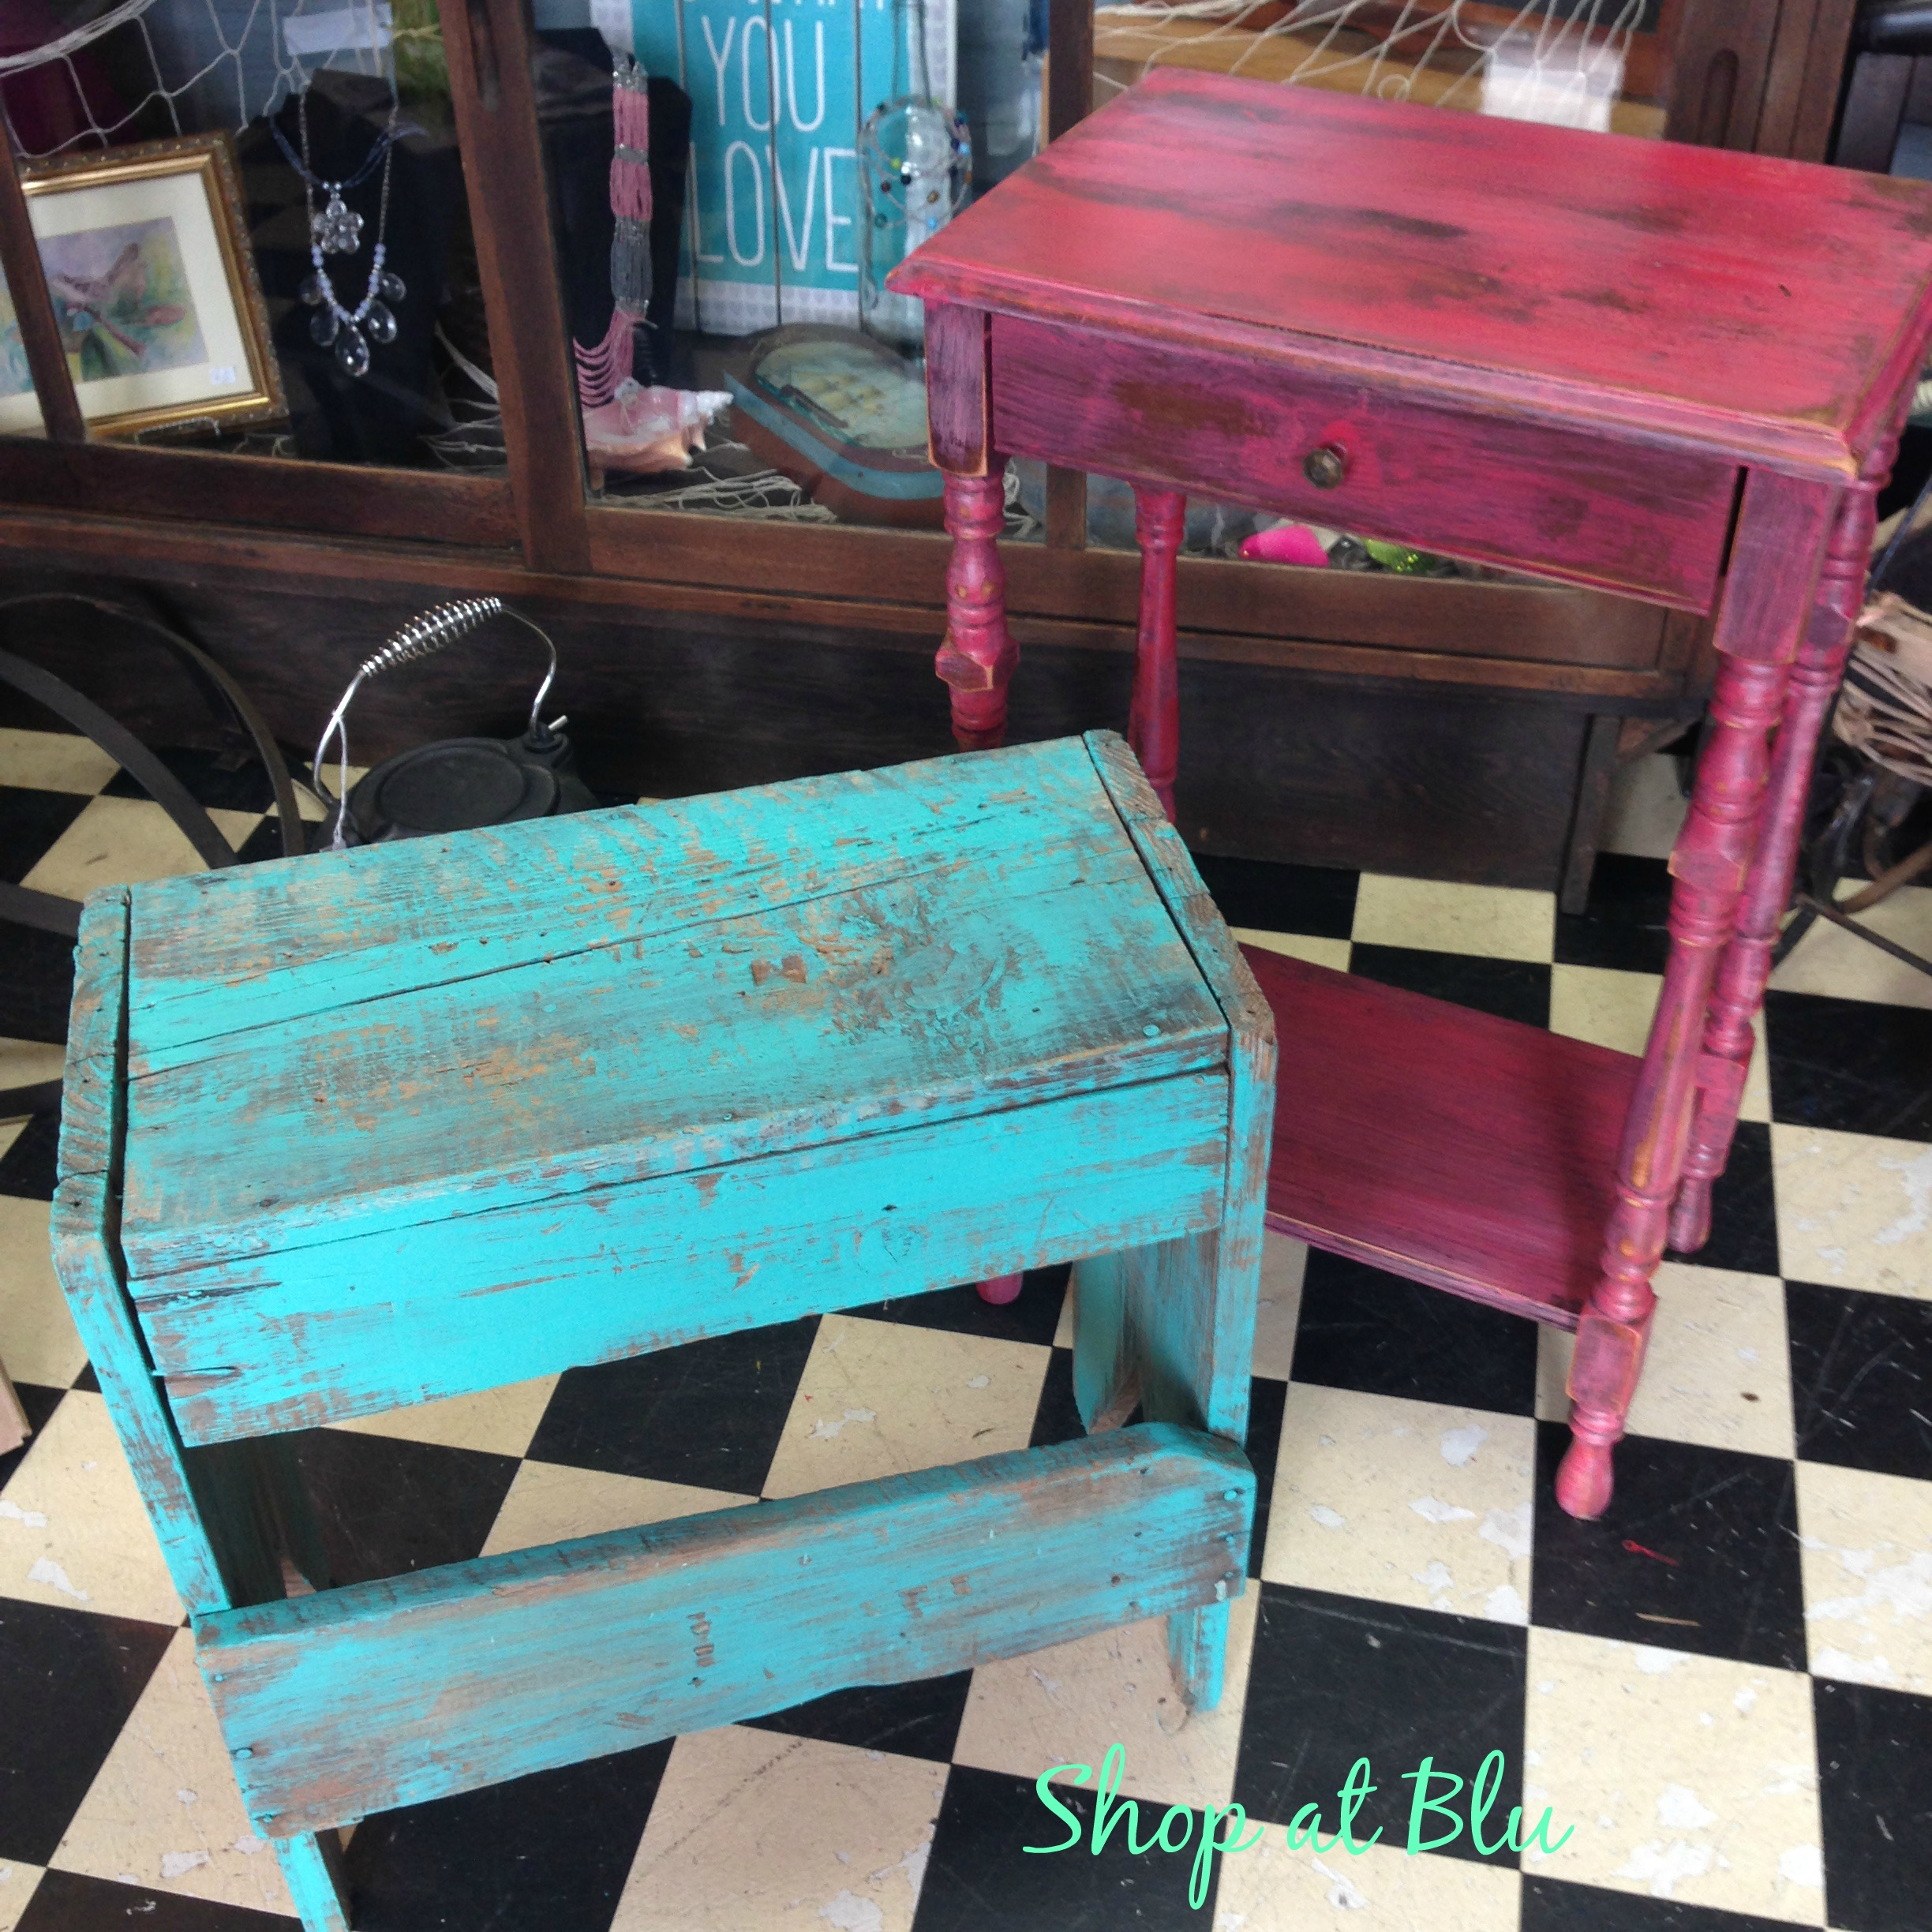 Shop-at-blu-the-blue-building-rustic-tables-after